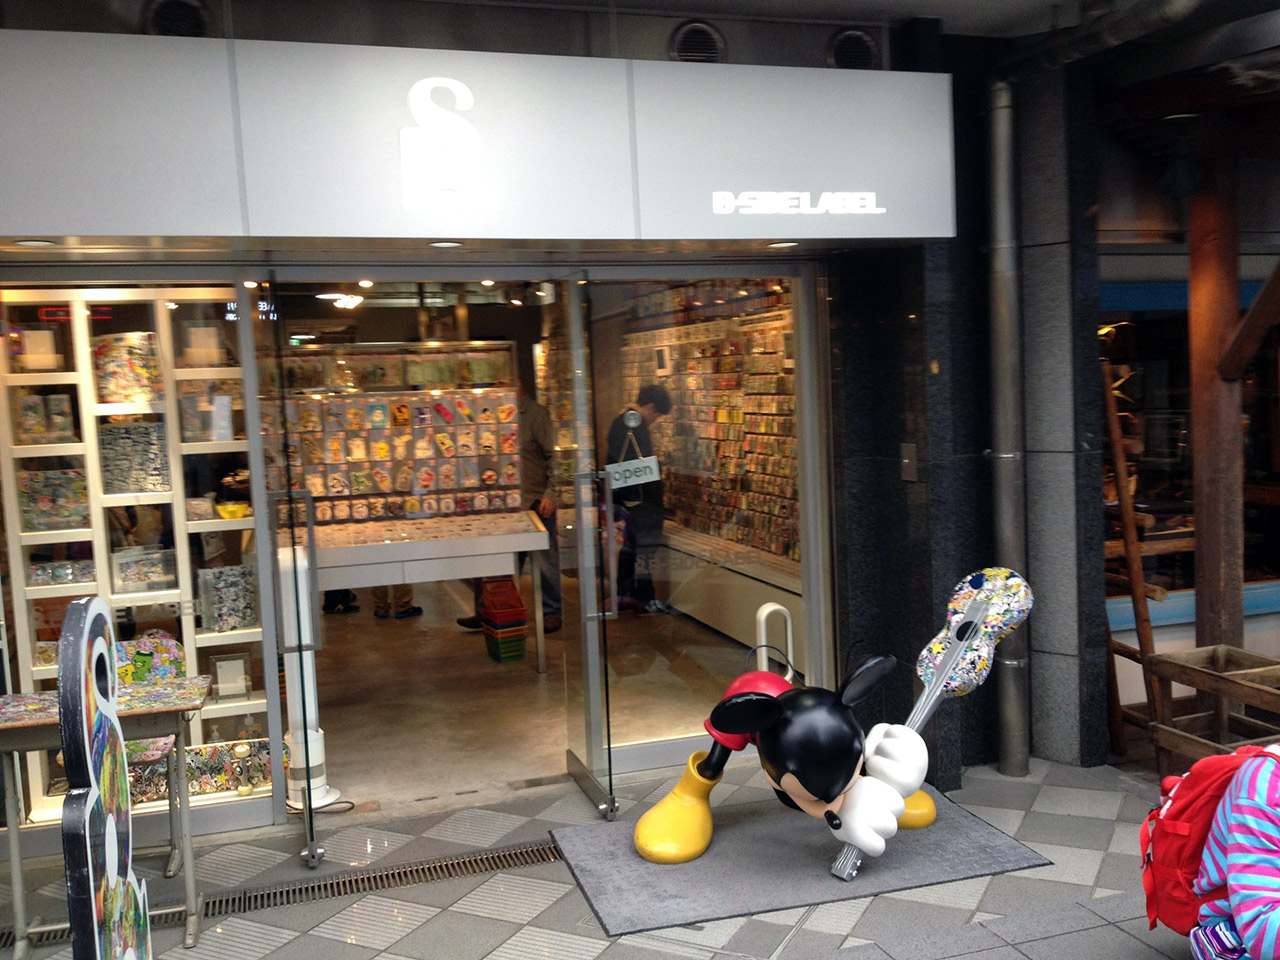 sticker store in japan with mickey mouse smashing guitar